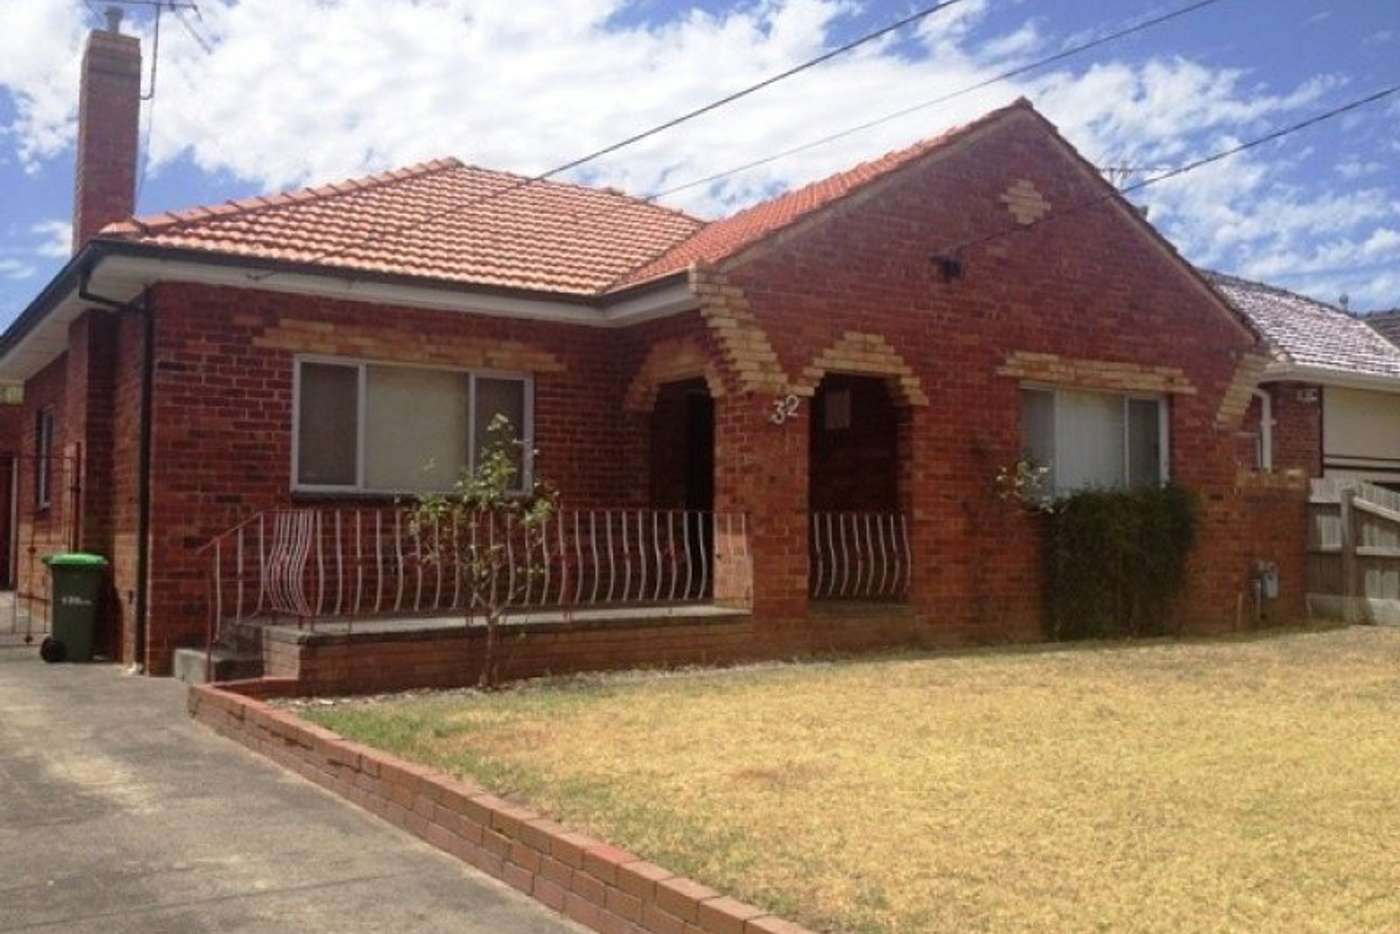 Main view of Homely house listing, 32 Goldsmith Avenue, Preston VIC 3072